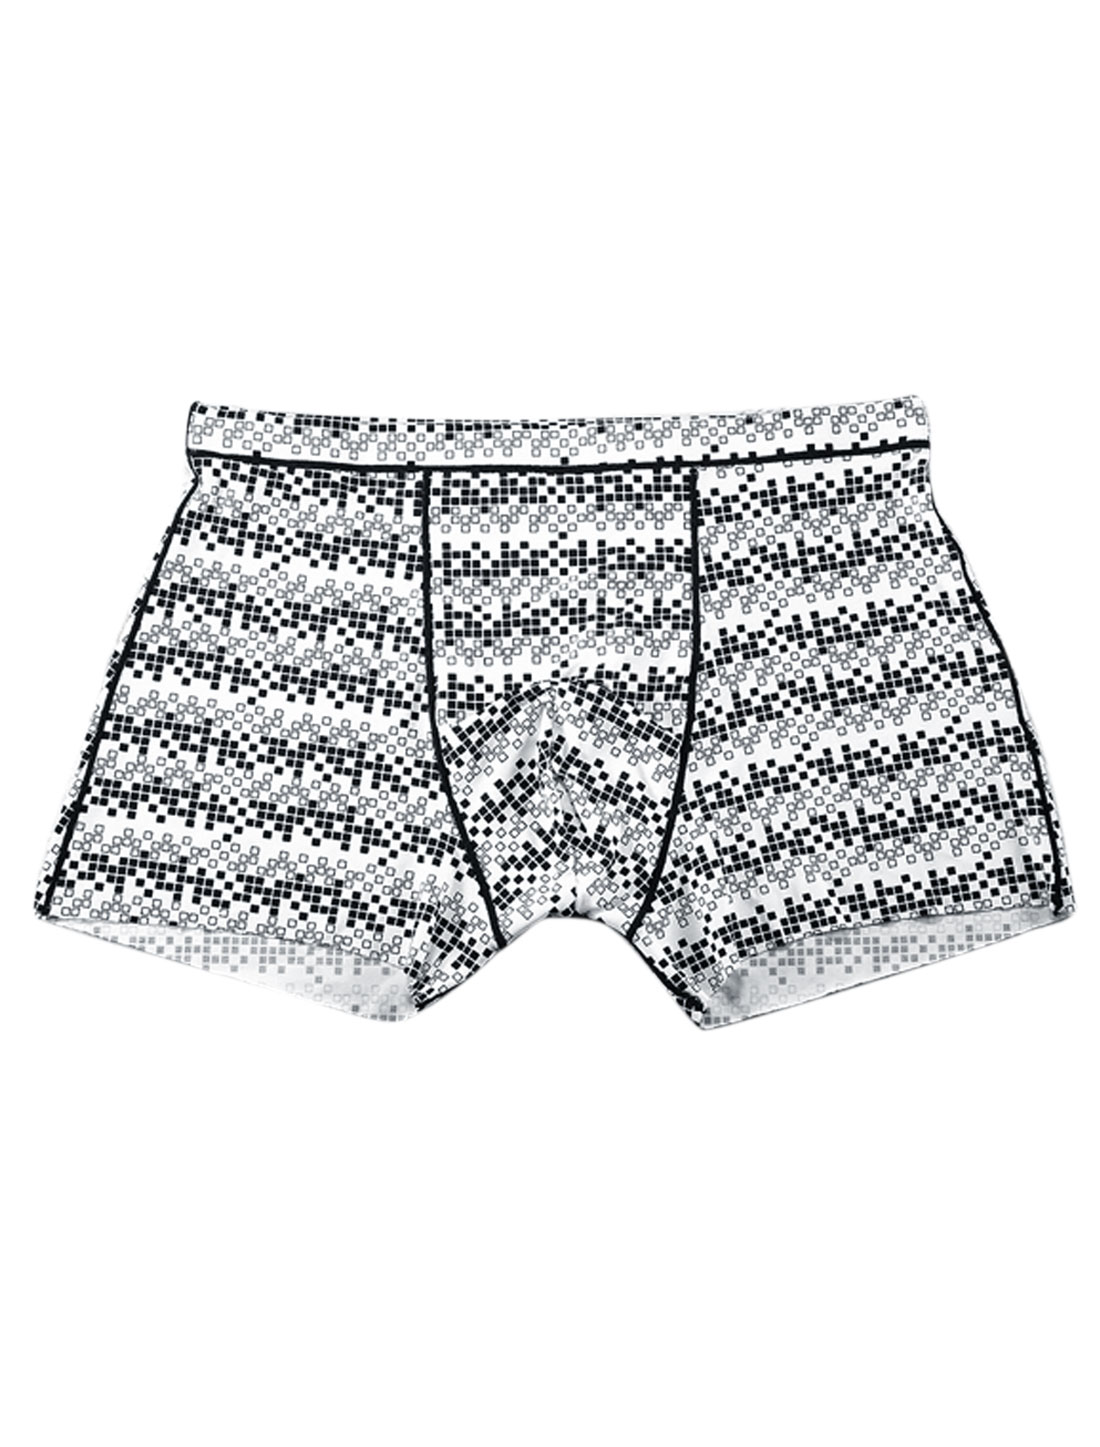 Men Elastic Waist Underwear Plaids Pattern Boxer Brief White Black W30